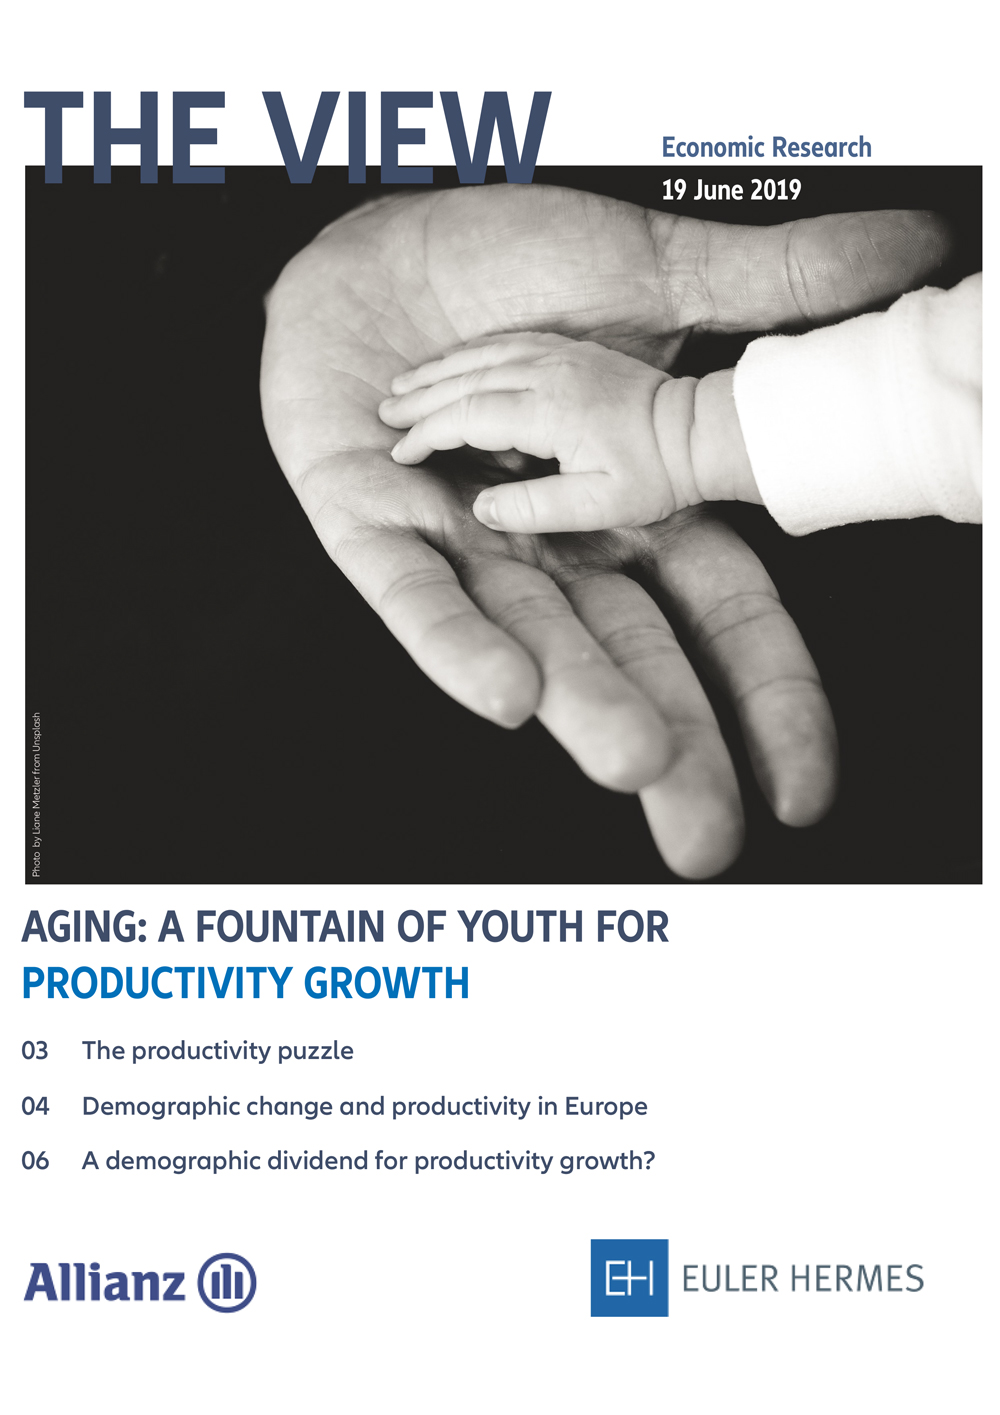 Aging: a fountain of youth for productivity growth